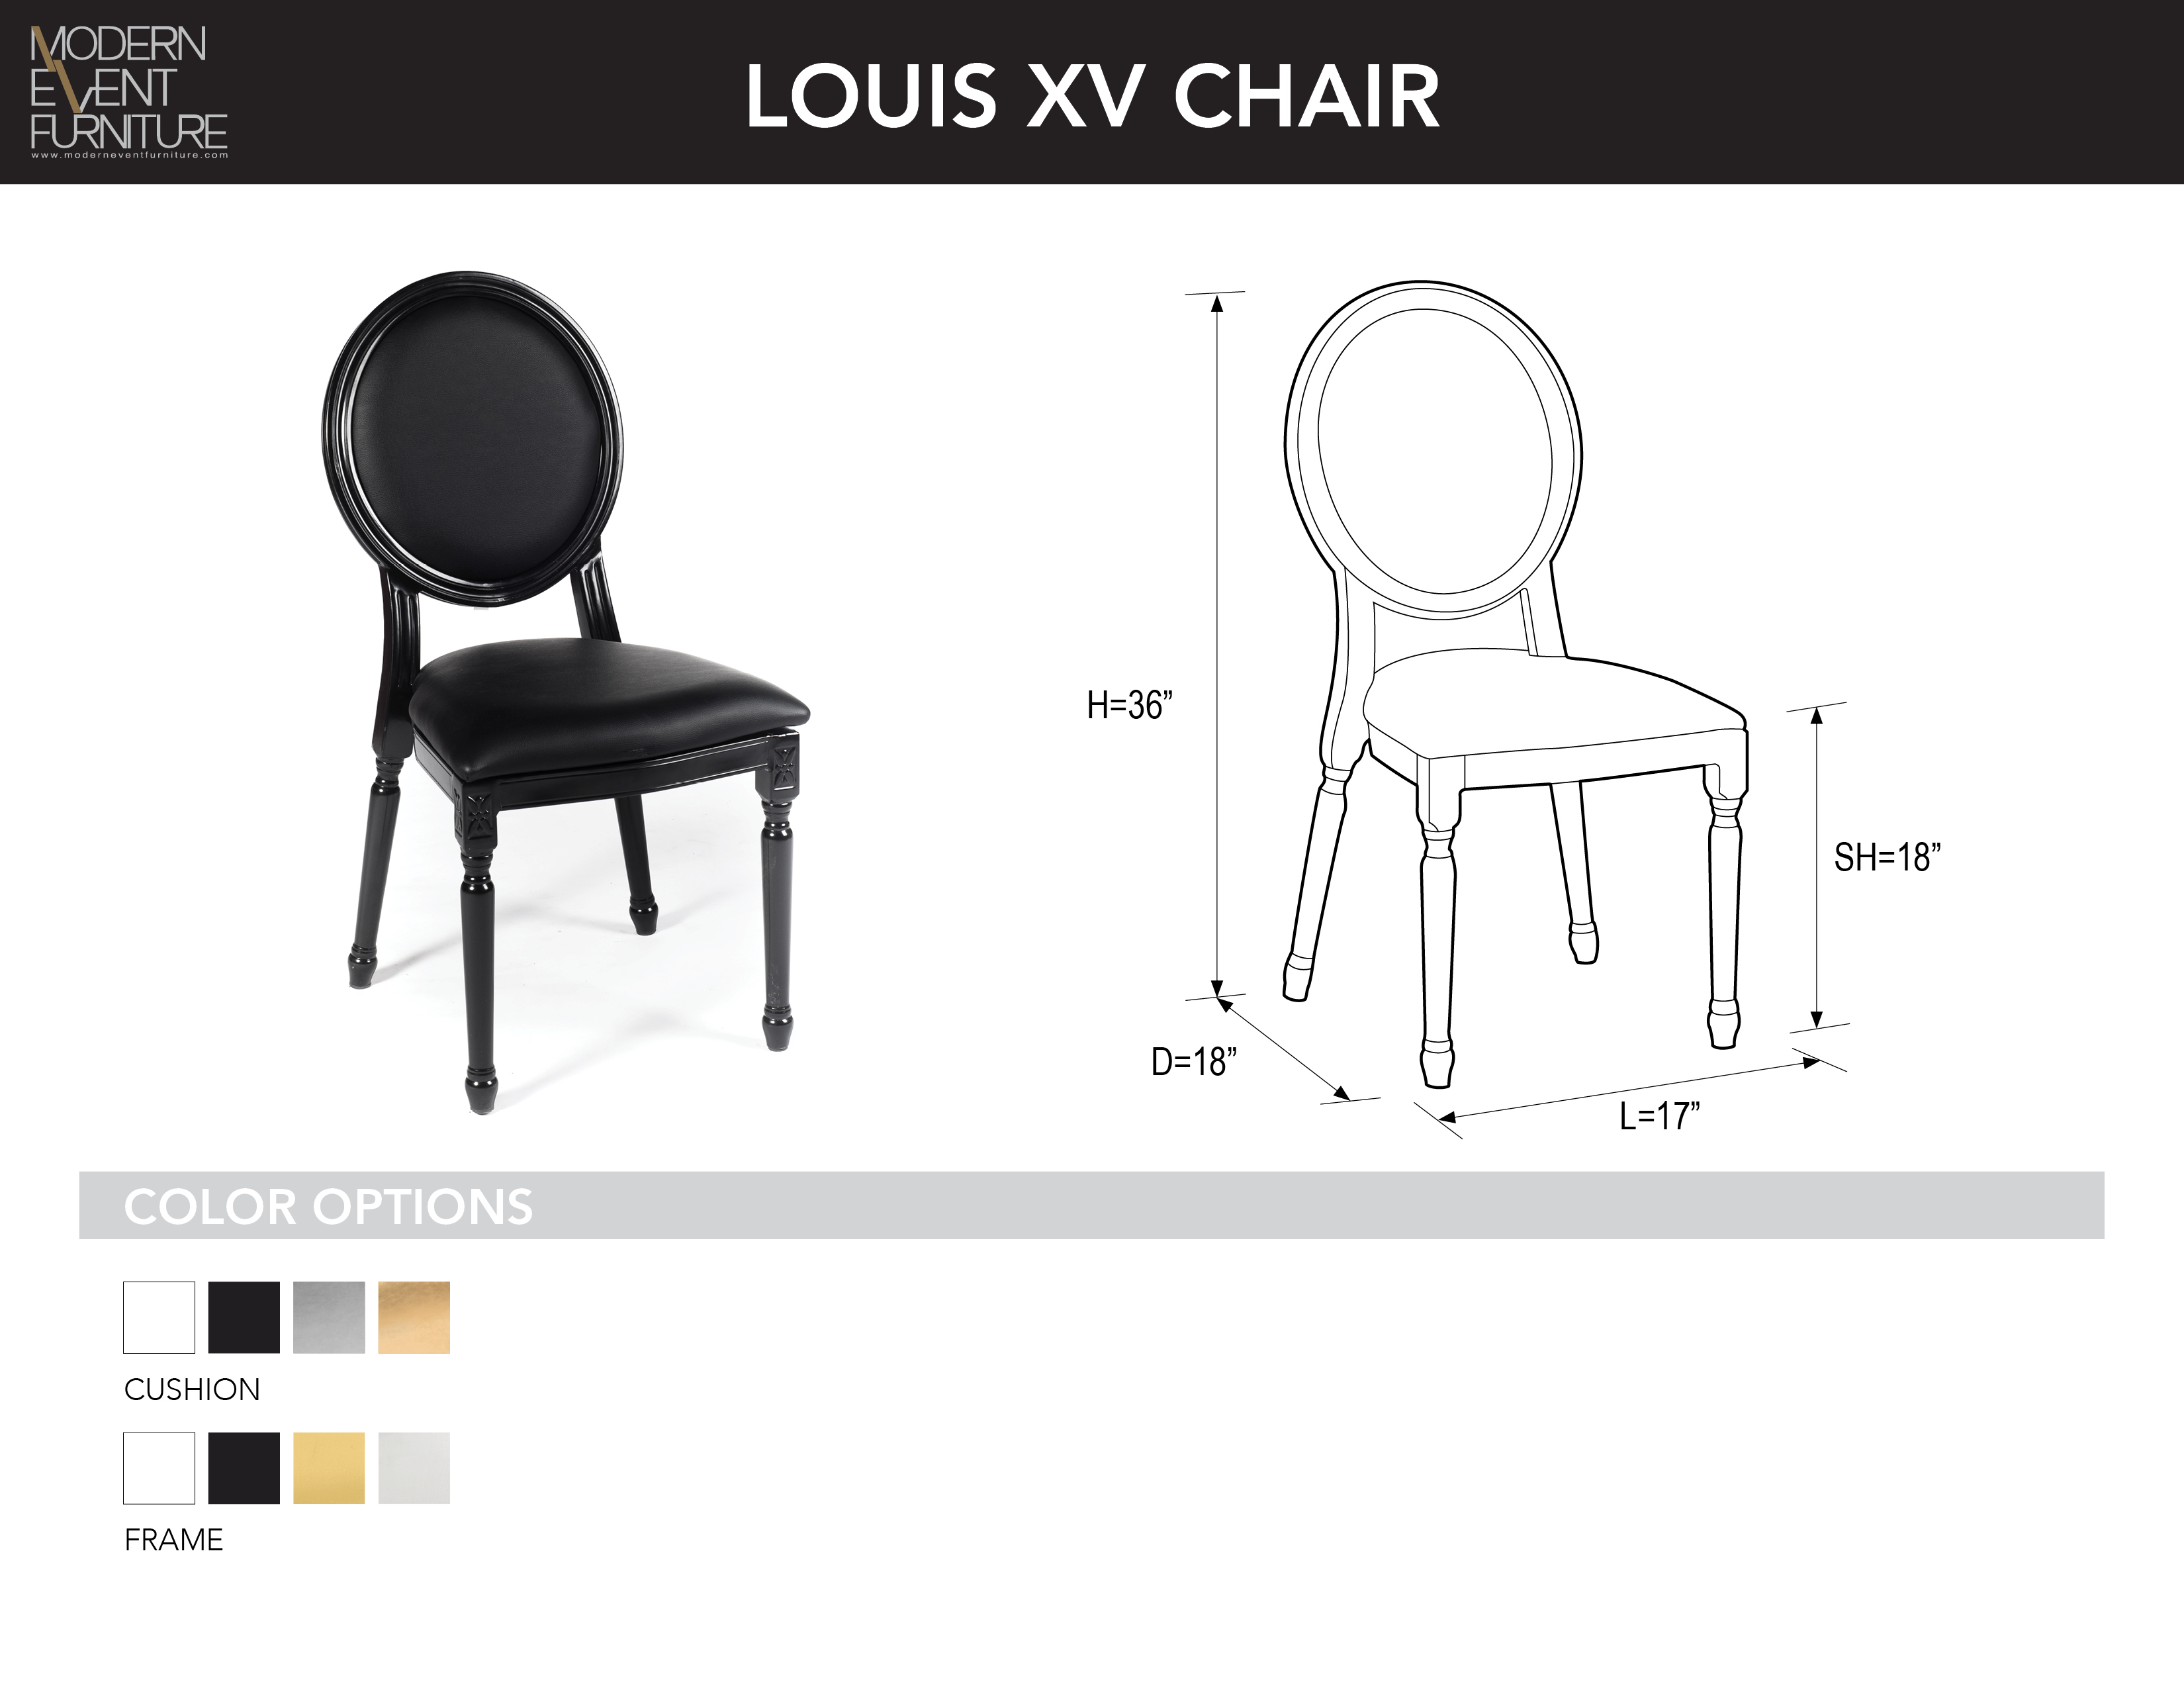 wheel chair dimensions best chairs tryp louis xv mef modern event furniture inc